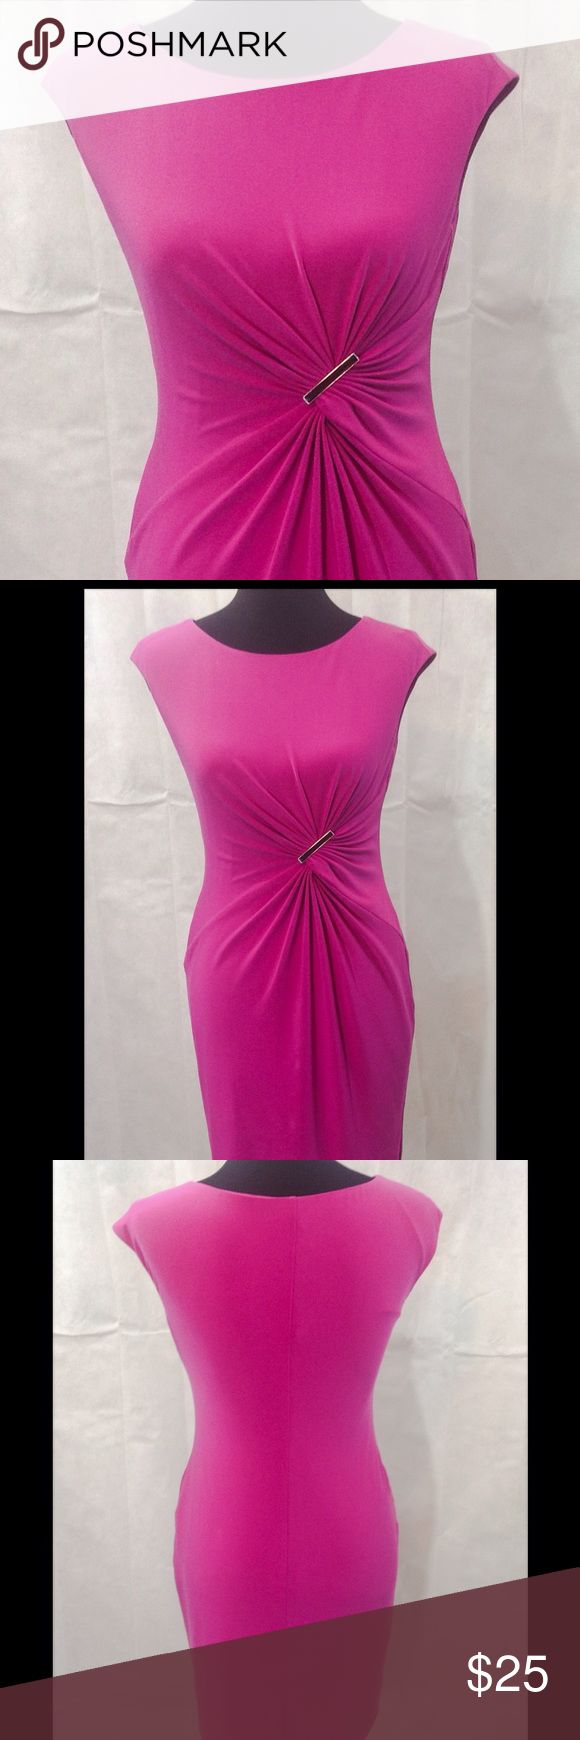 Vibrant Fuchsia Anne Klein Dress What a Vibrant color. Beautiful Fuchsia Dress gathers at the waist to add texture and draw attention to your curves. GUC.  Fully lined. 95% polyester, 5% spandex. Dry Clean. Anne Klein Dresses Midi